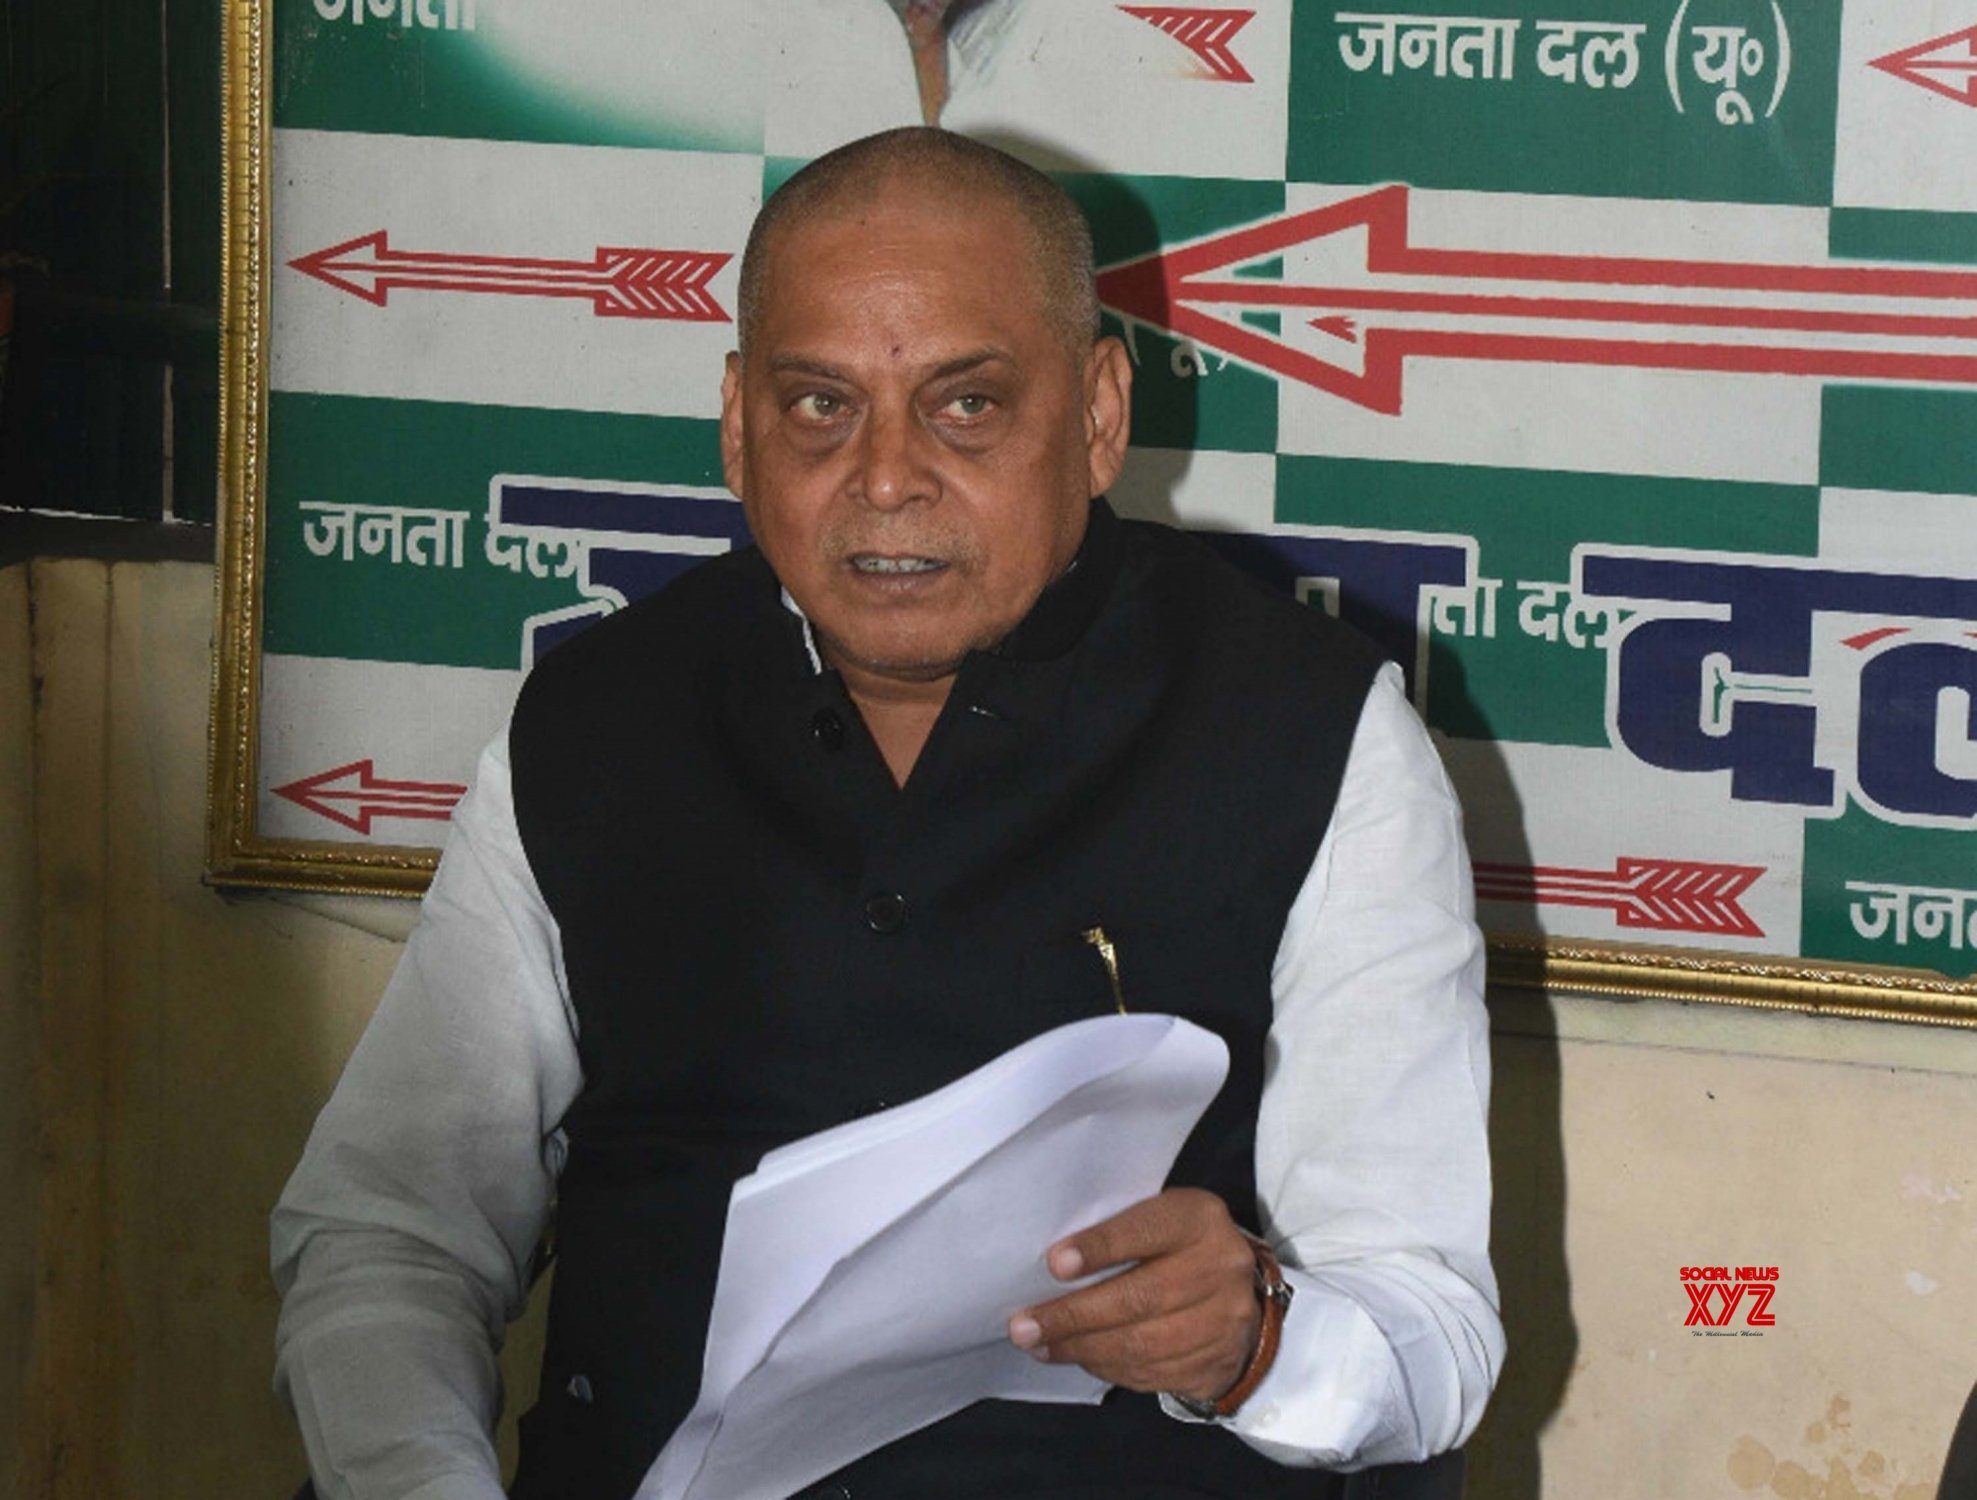 Patna: Neeraj Kumar's press conference #Gallery